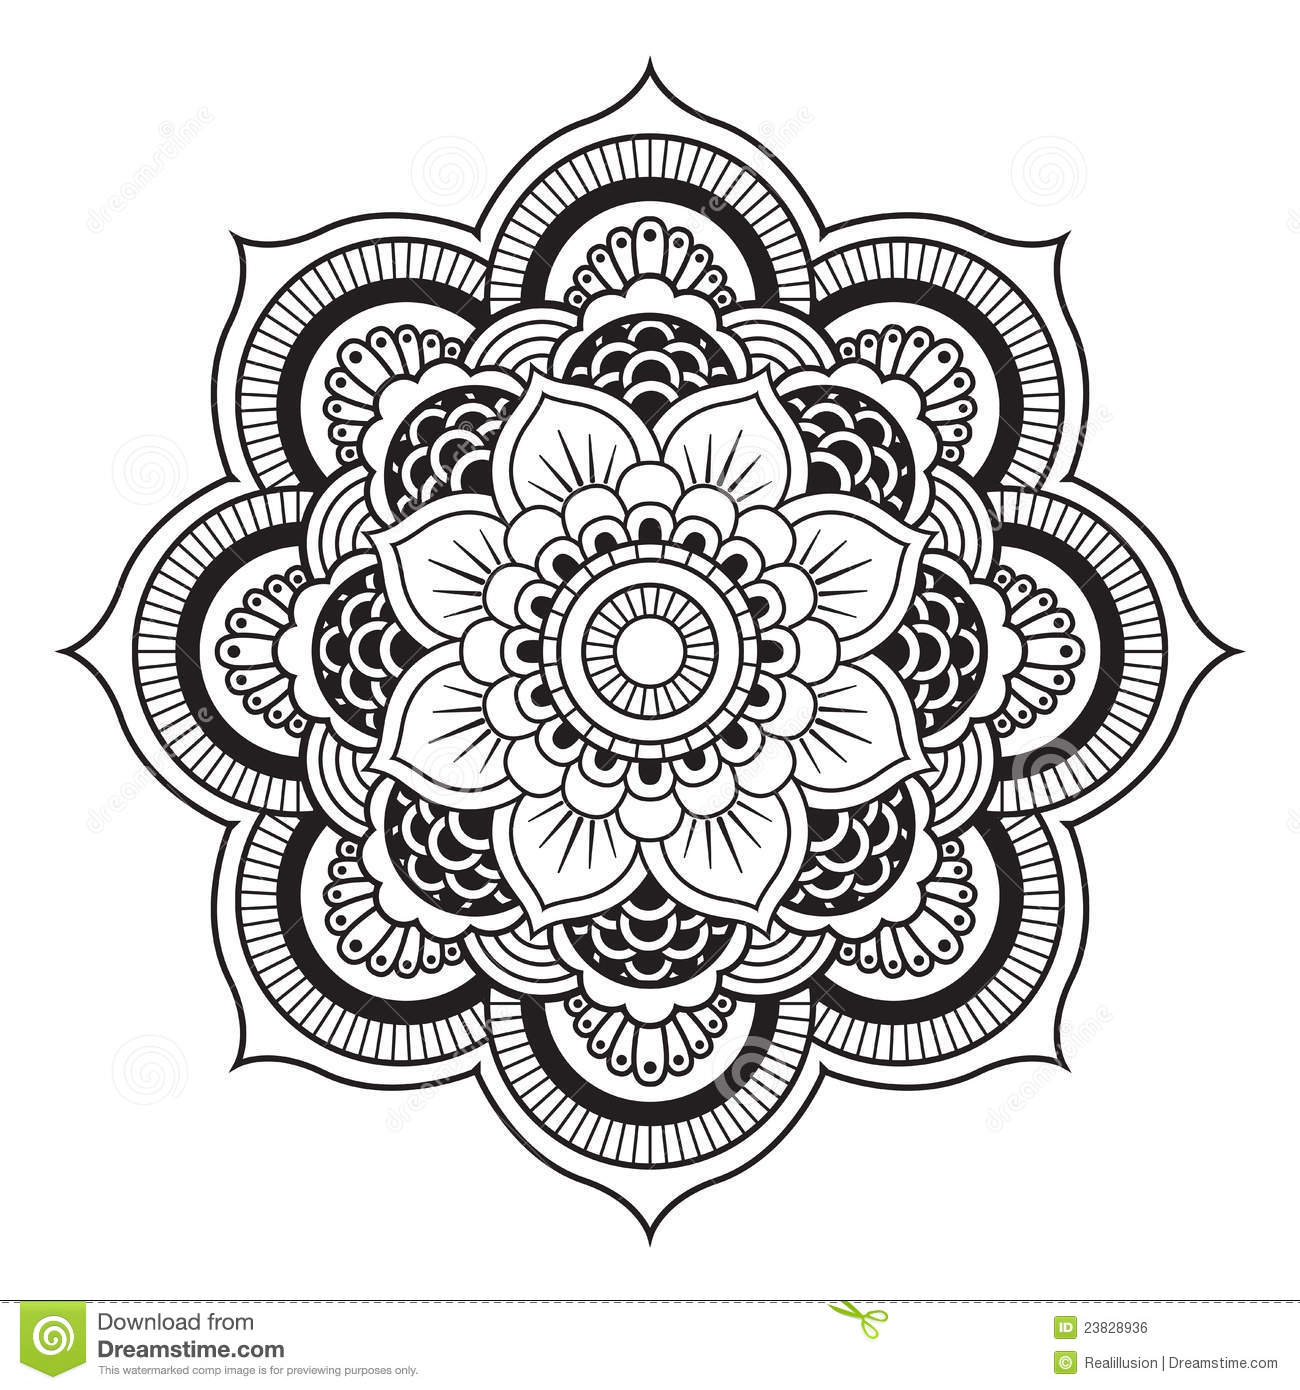 Mandala Printable Coloring Pages Sheets For Kids Get The Latest Free Images Favorite To Print Online